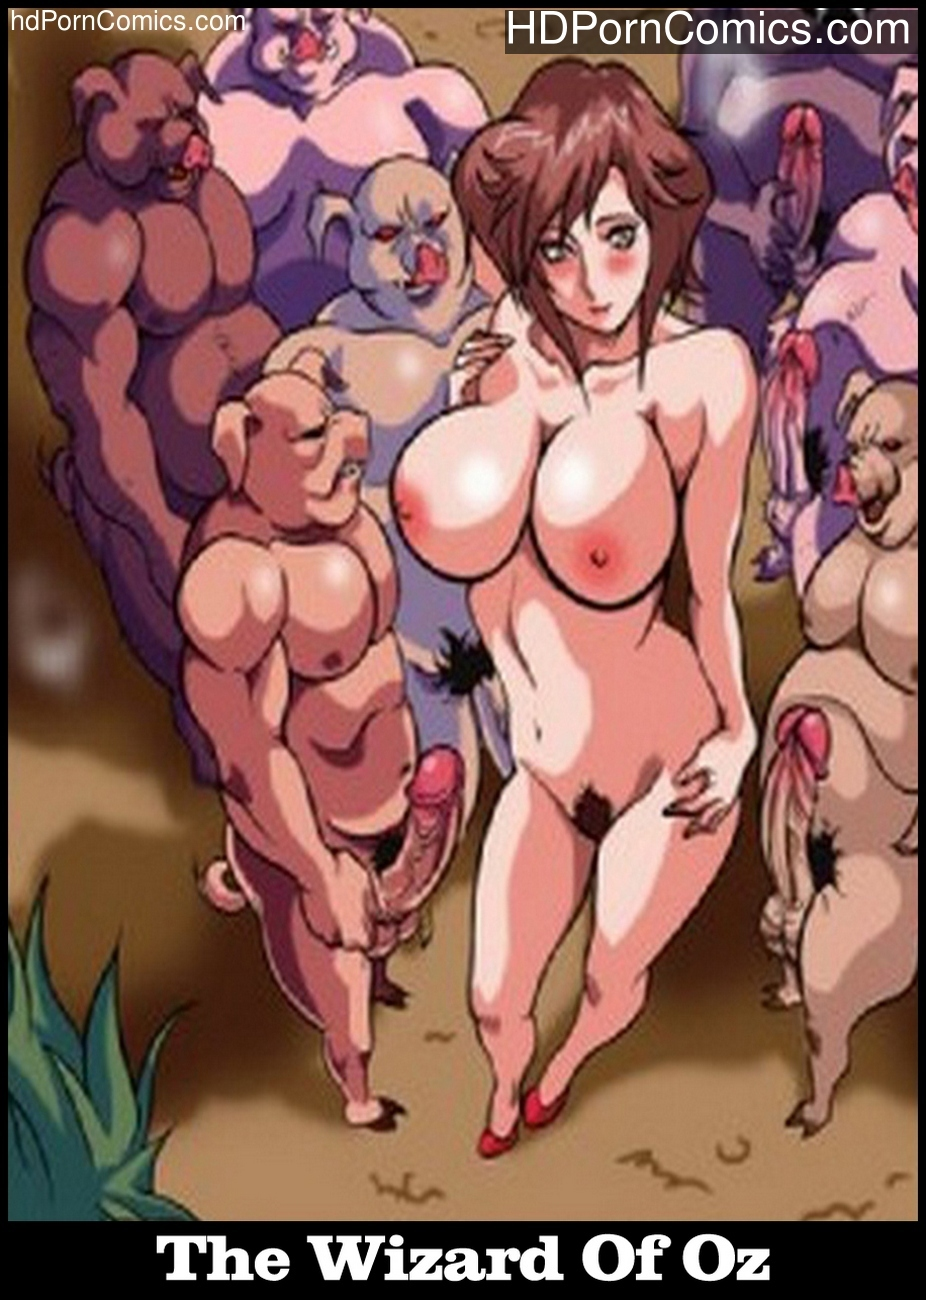 The Wizard Of Oz – A XXX Parody Sex Comic